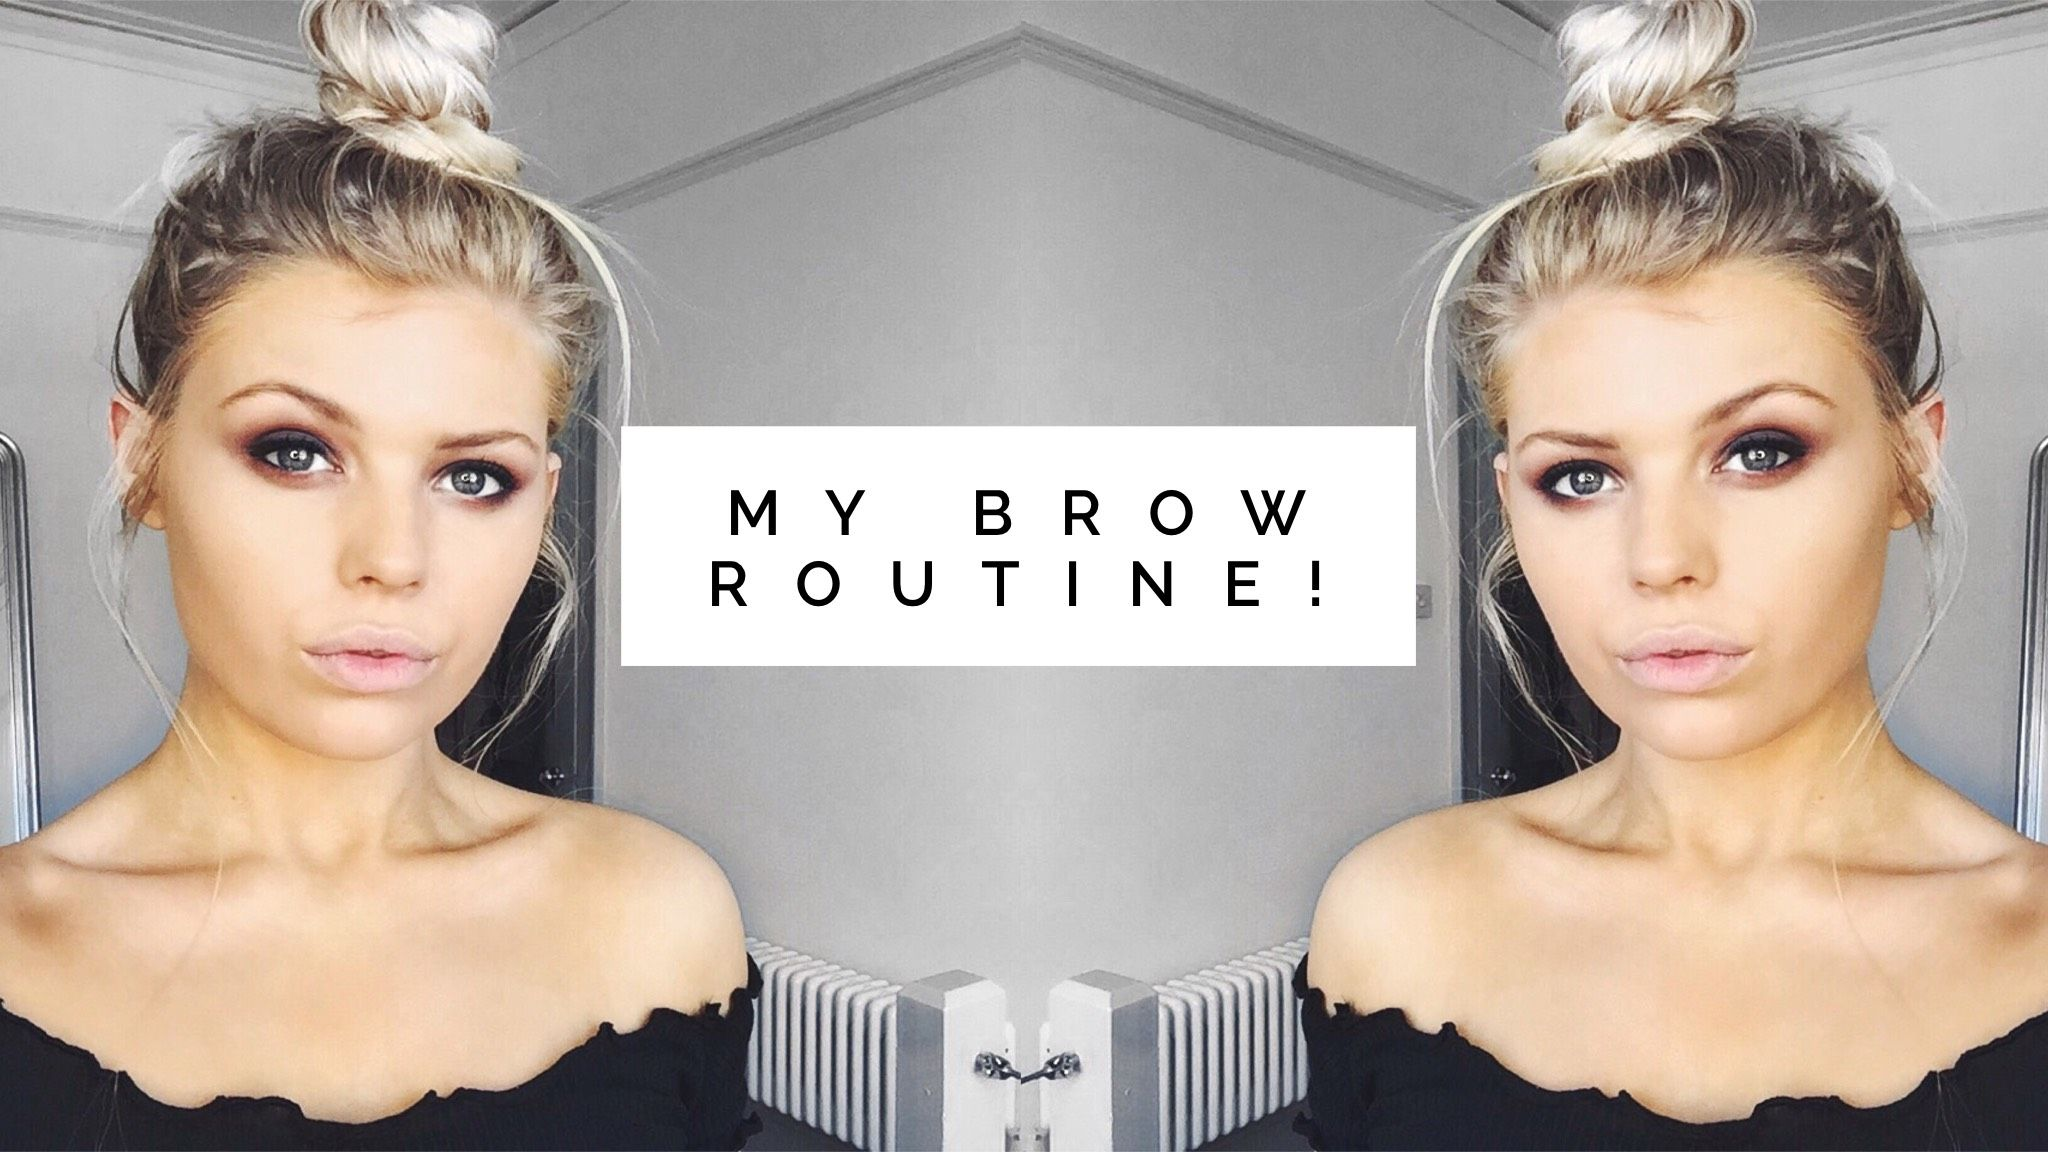 How To Dye Eyebrows At Home My Brow Tint Routine Ruby Radzik As A Blonde With Fair Skin Brow Dye Is A Must Unless I Want Dye Eyebrows Brow Tinting Brows